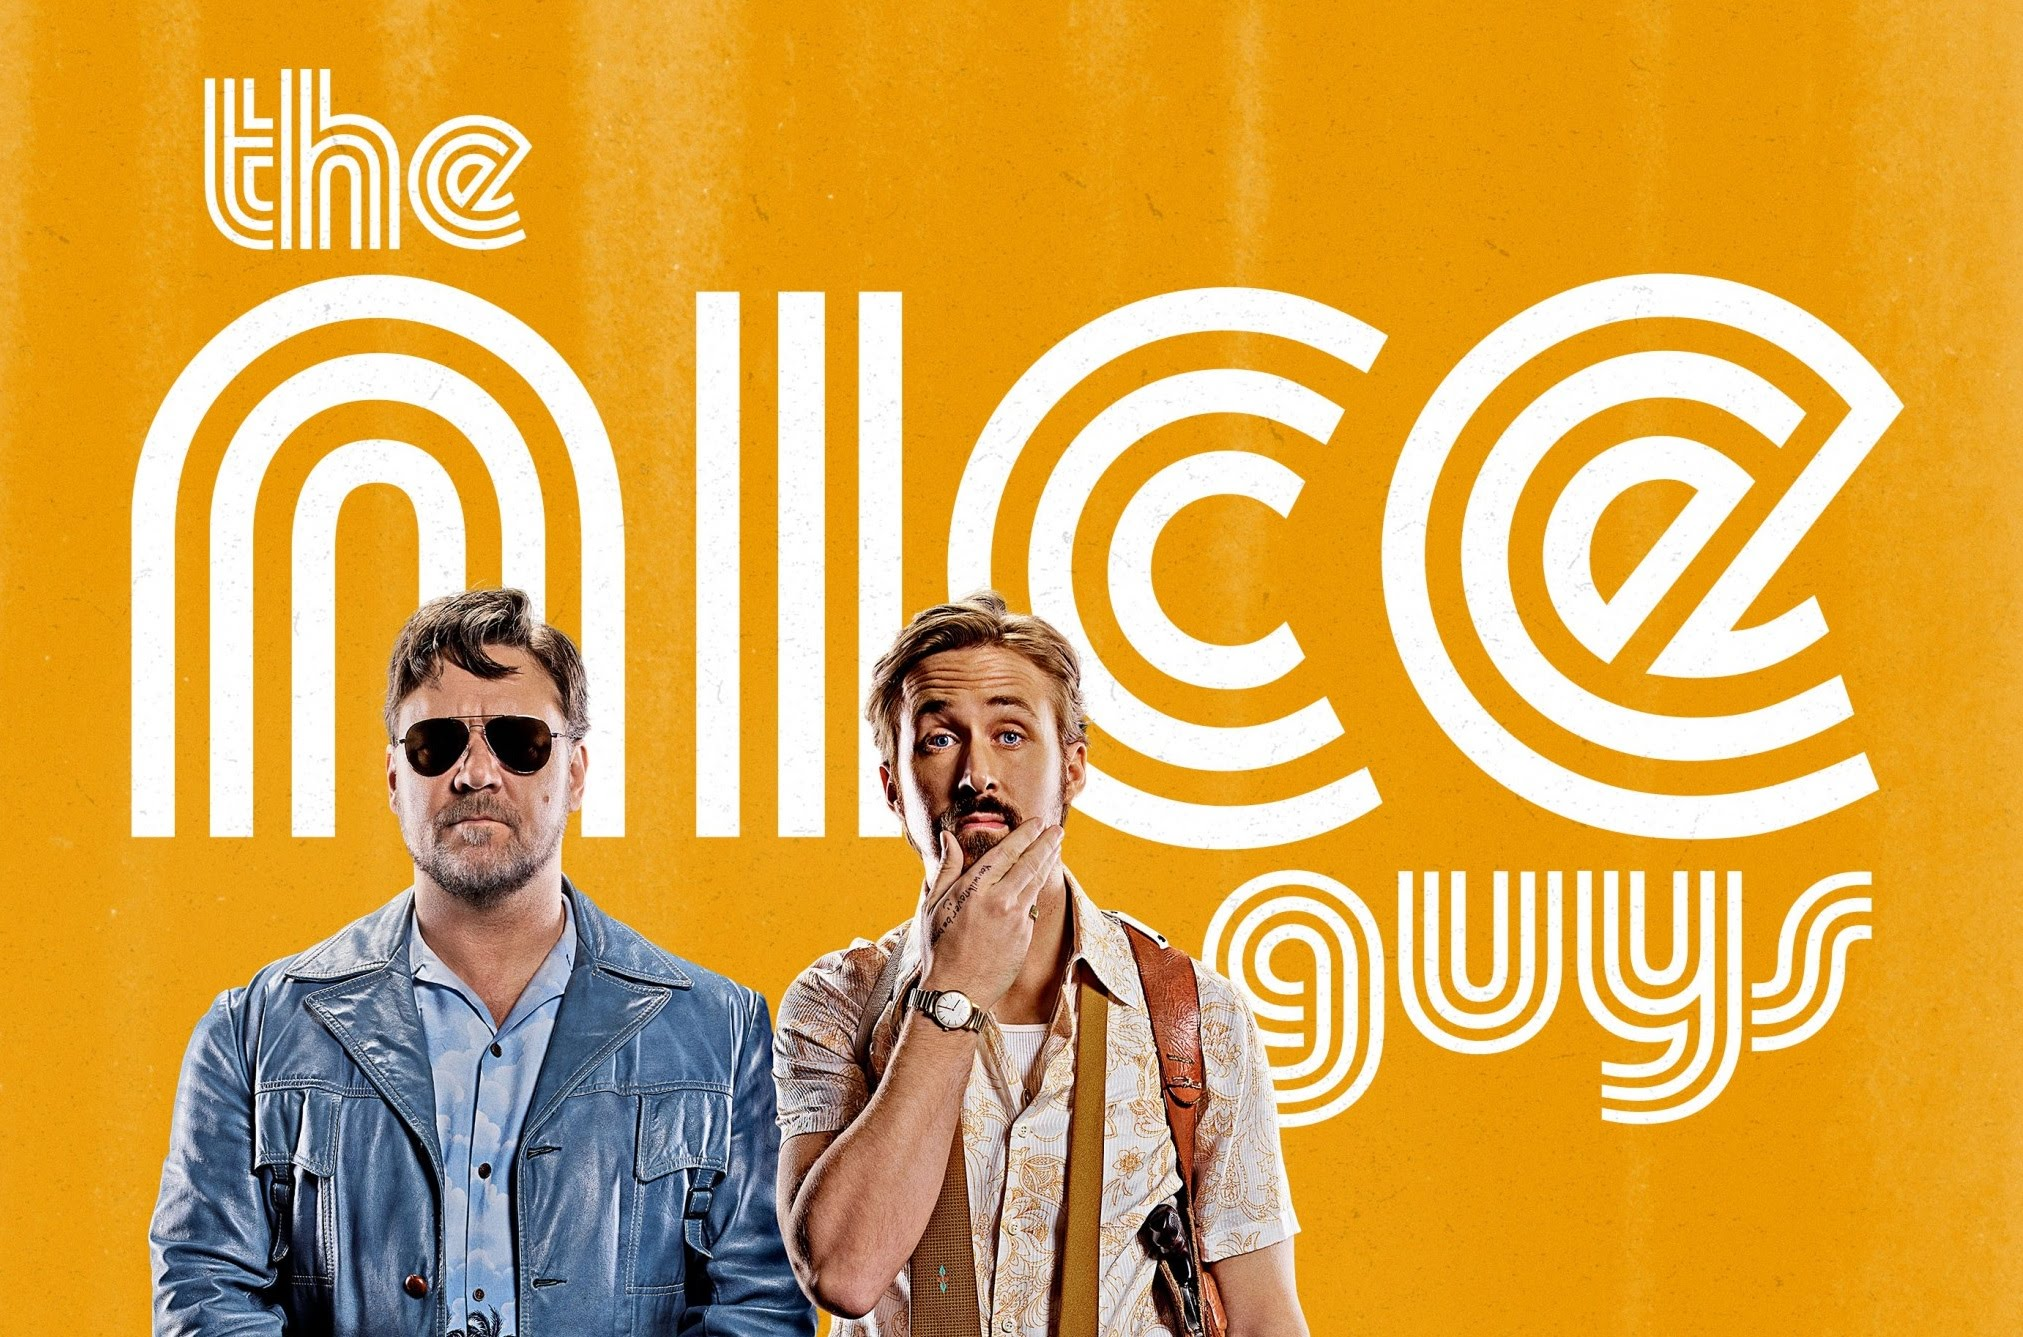 Rendes fickók (The Nice Guys, 2016)